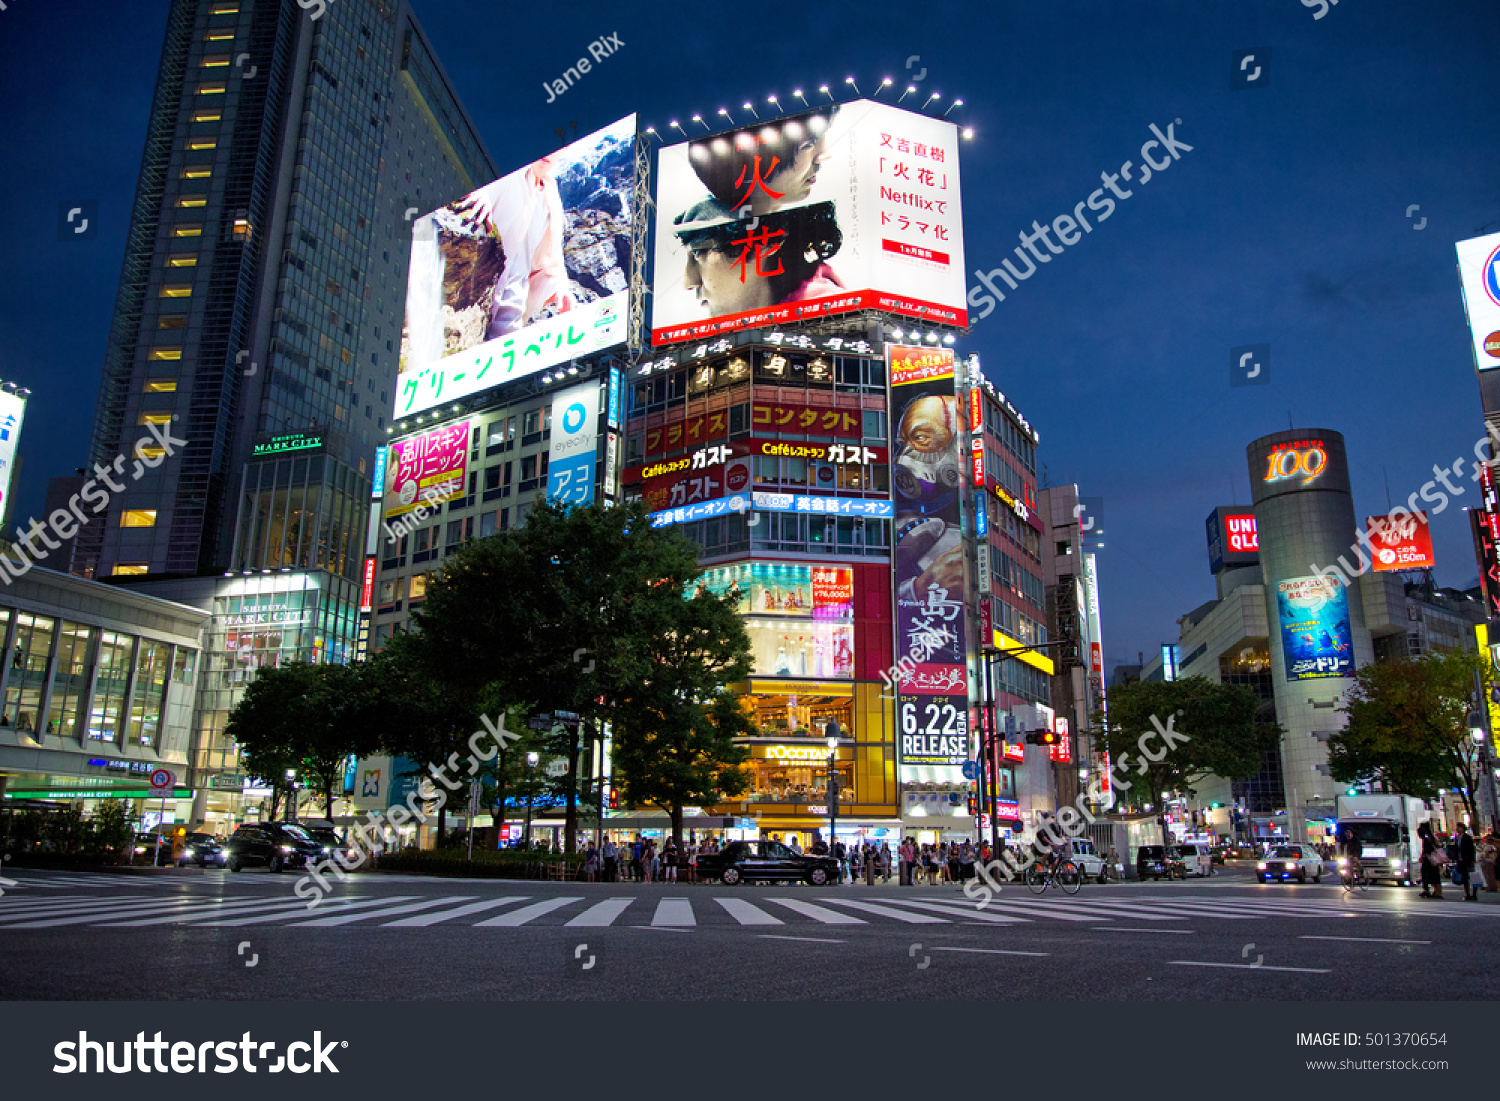 TOKYO Japan 26th June 2016 The busy commercial and shopping district of Shibuya at night Tokyo Japan